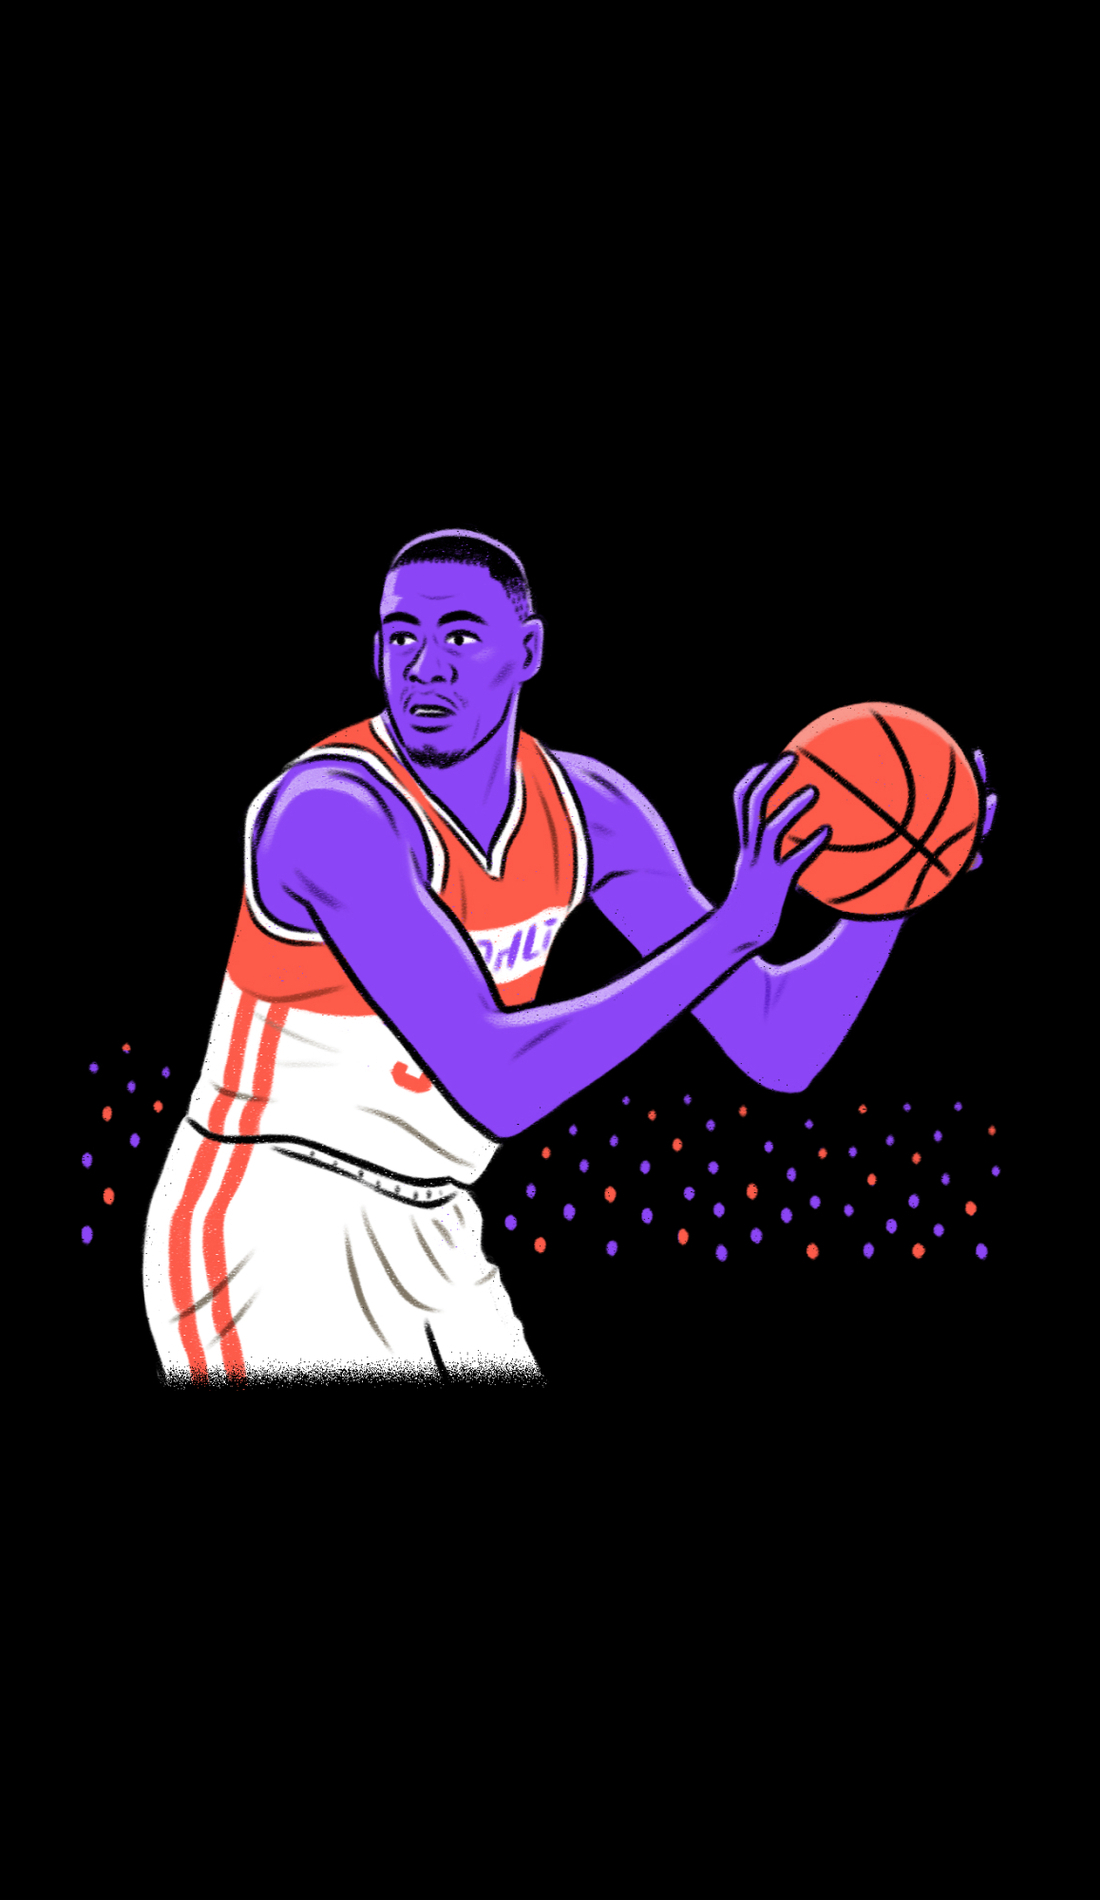 A South Carolina Gamecocks Basketball live event